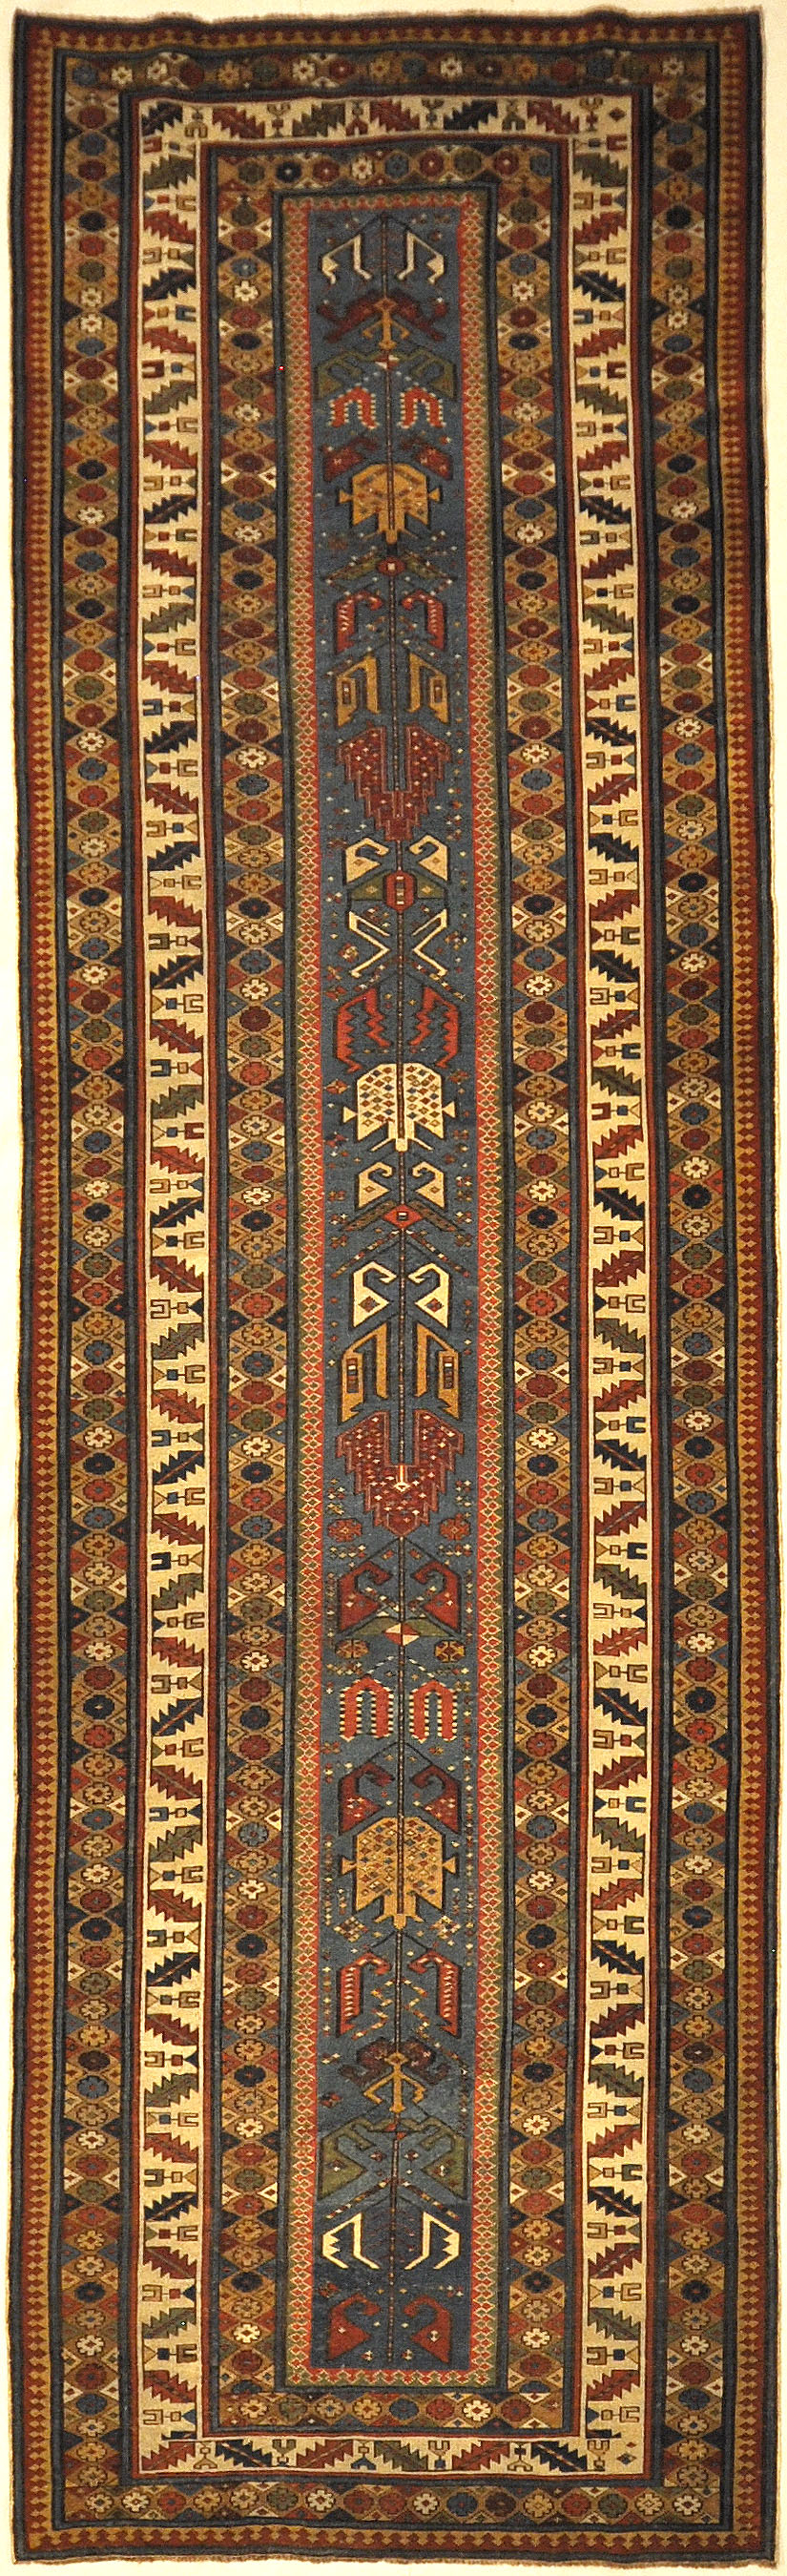 Antique Early 19th Century Shirvan Runner Rug. A piece of genuine authentic woven carpet art sold by the Santa Barbara Design Center Rugs and More.